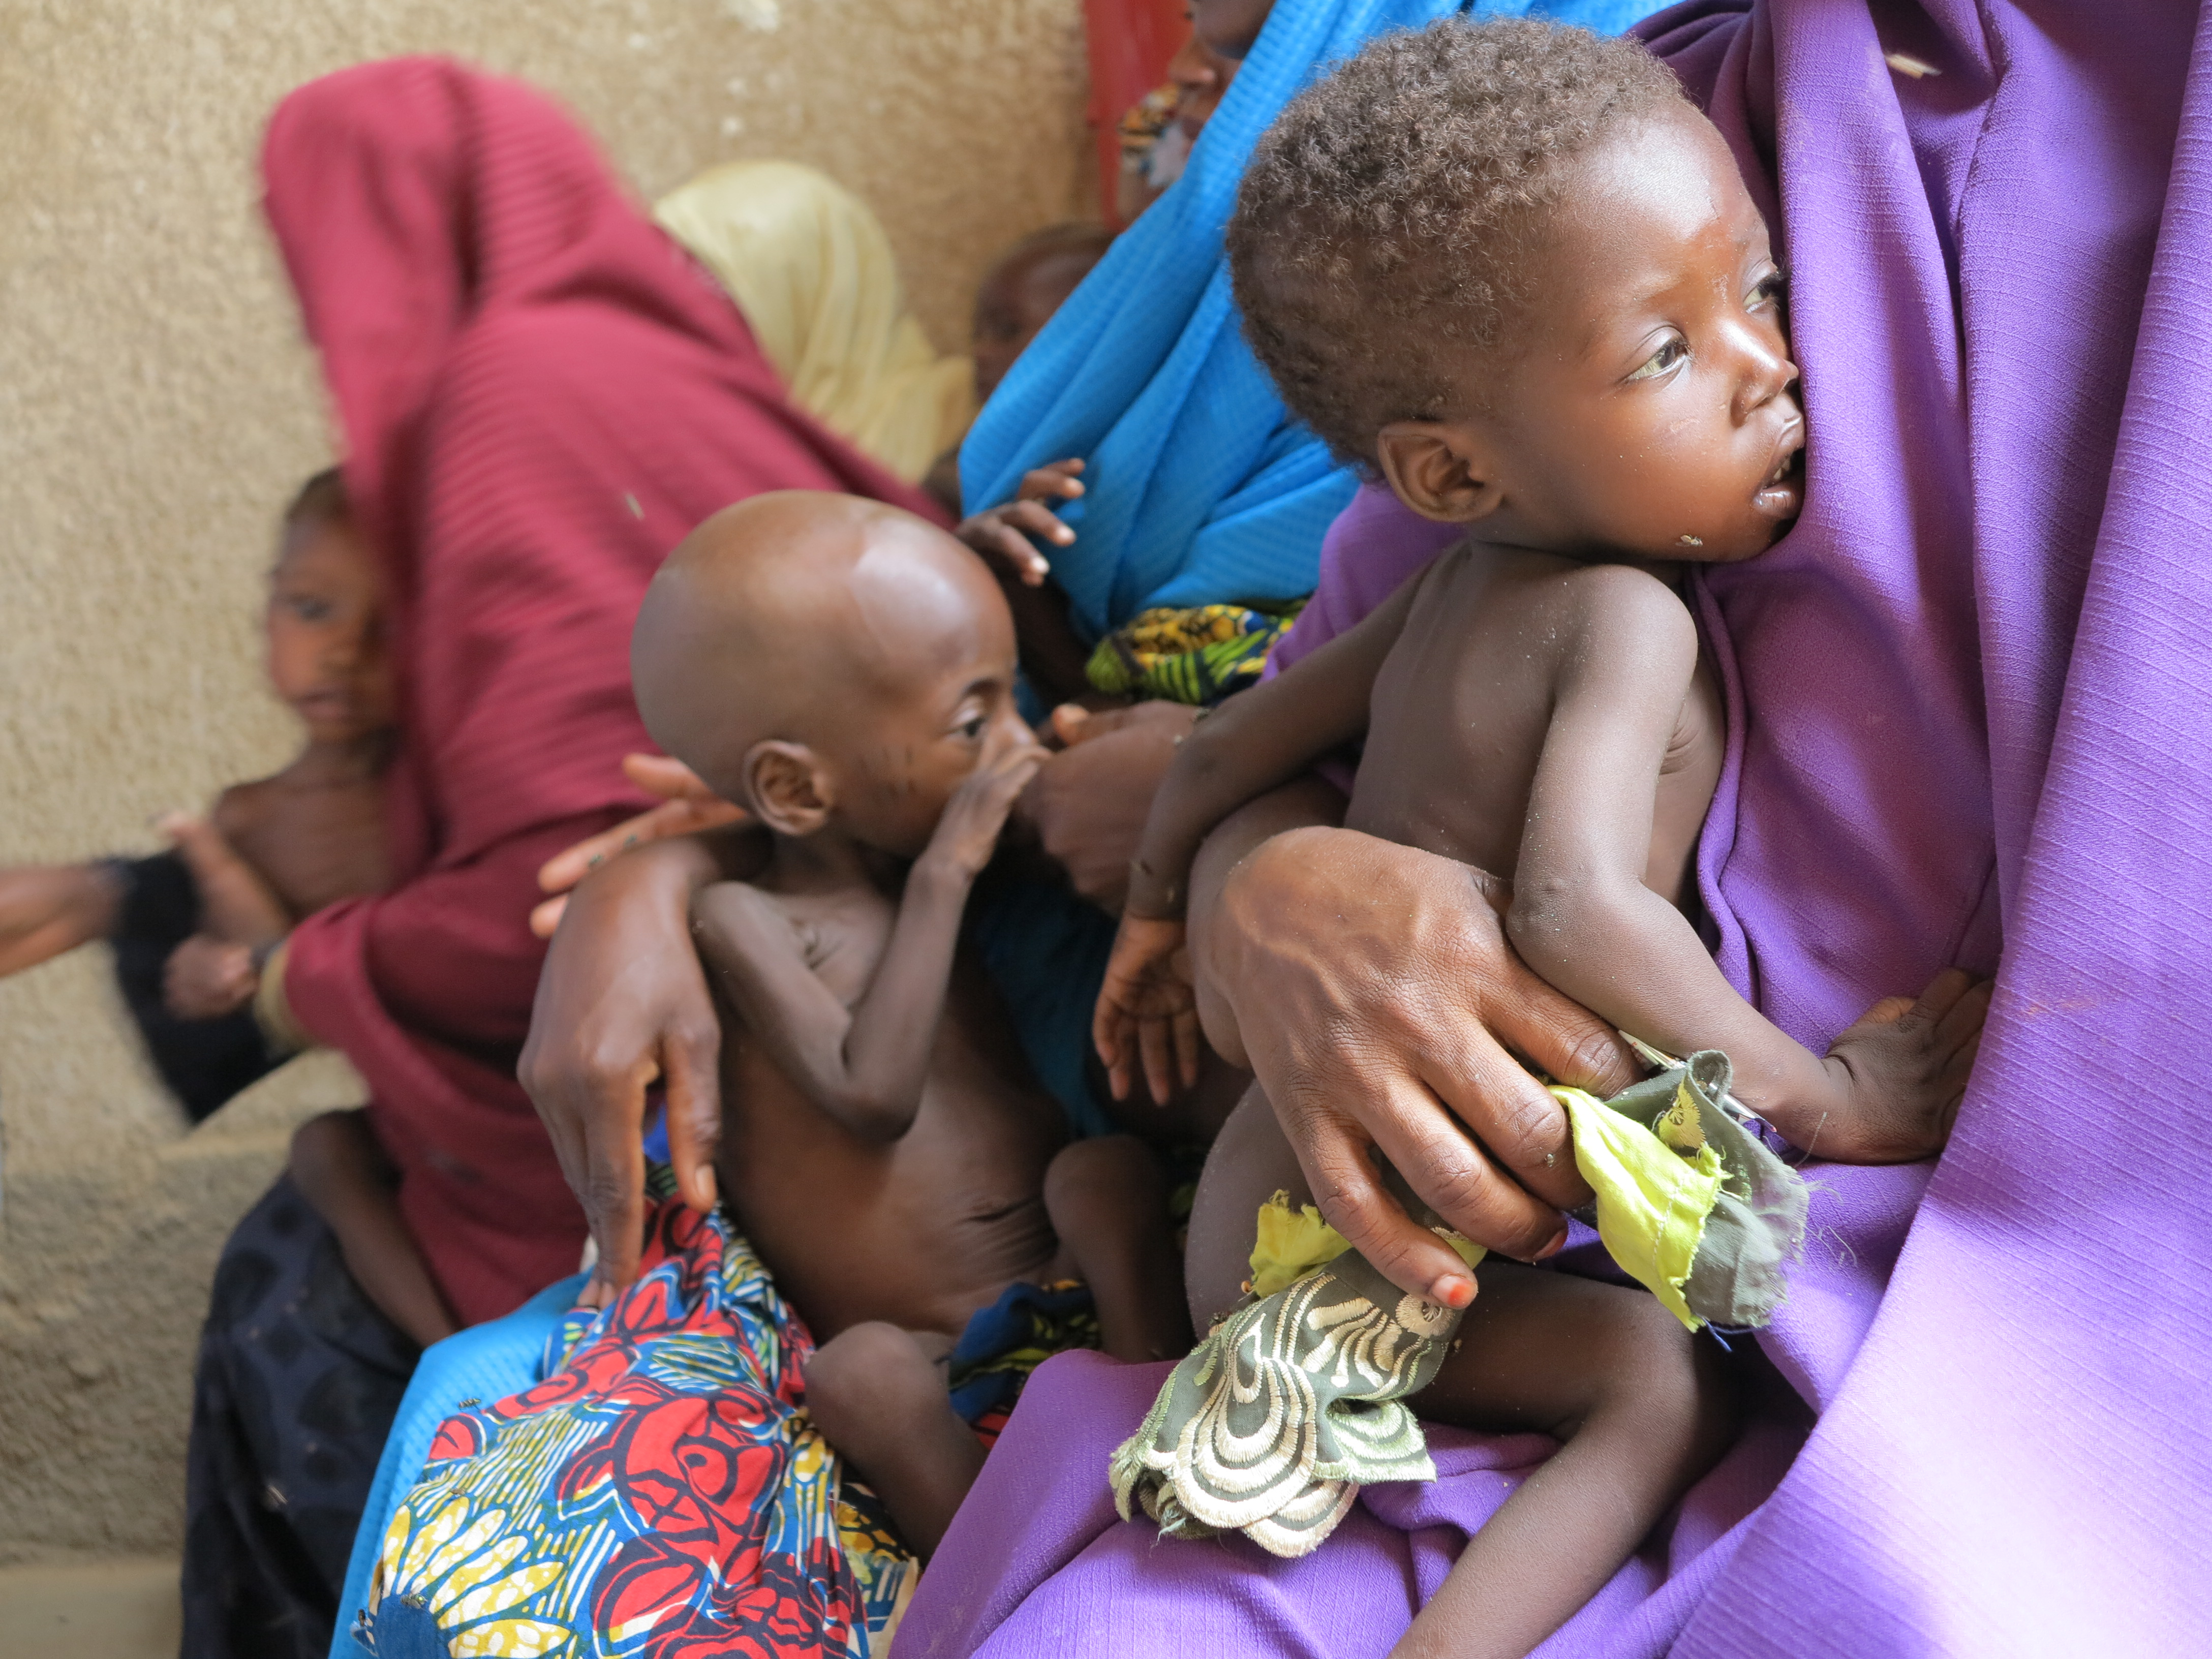 Yahya Abdumalik, a 14-month-old severely malnourished child held by his mother, Zayha Arouna, at a clinic in Madarounfa, a village in Niger near the Nigerian border on June 14, 2012